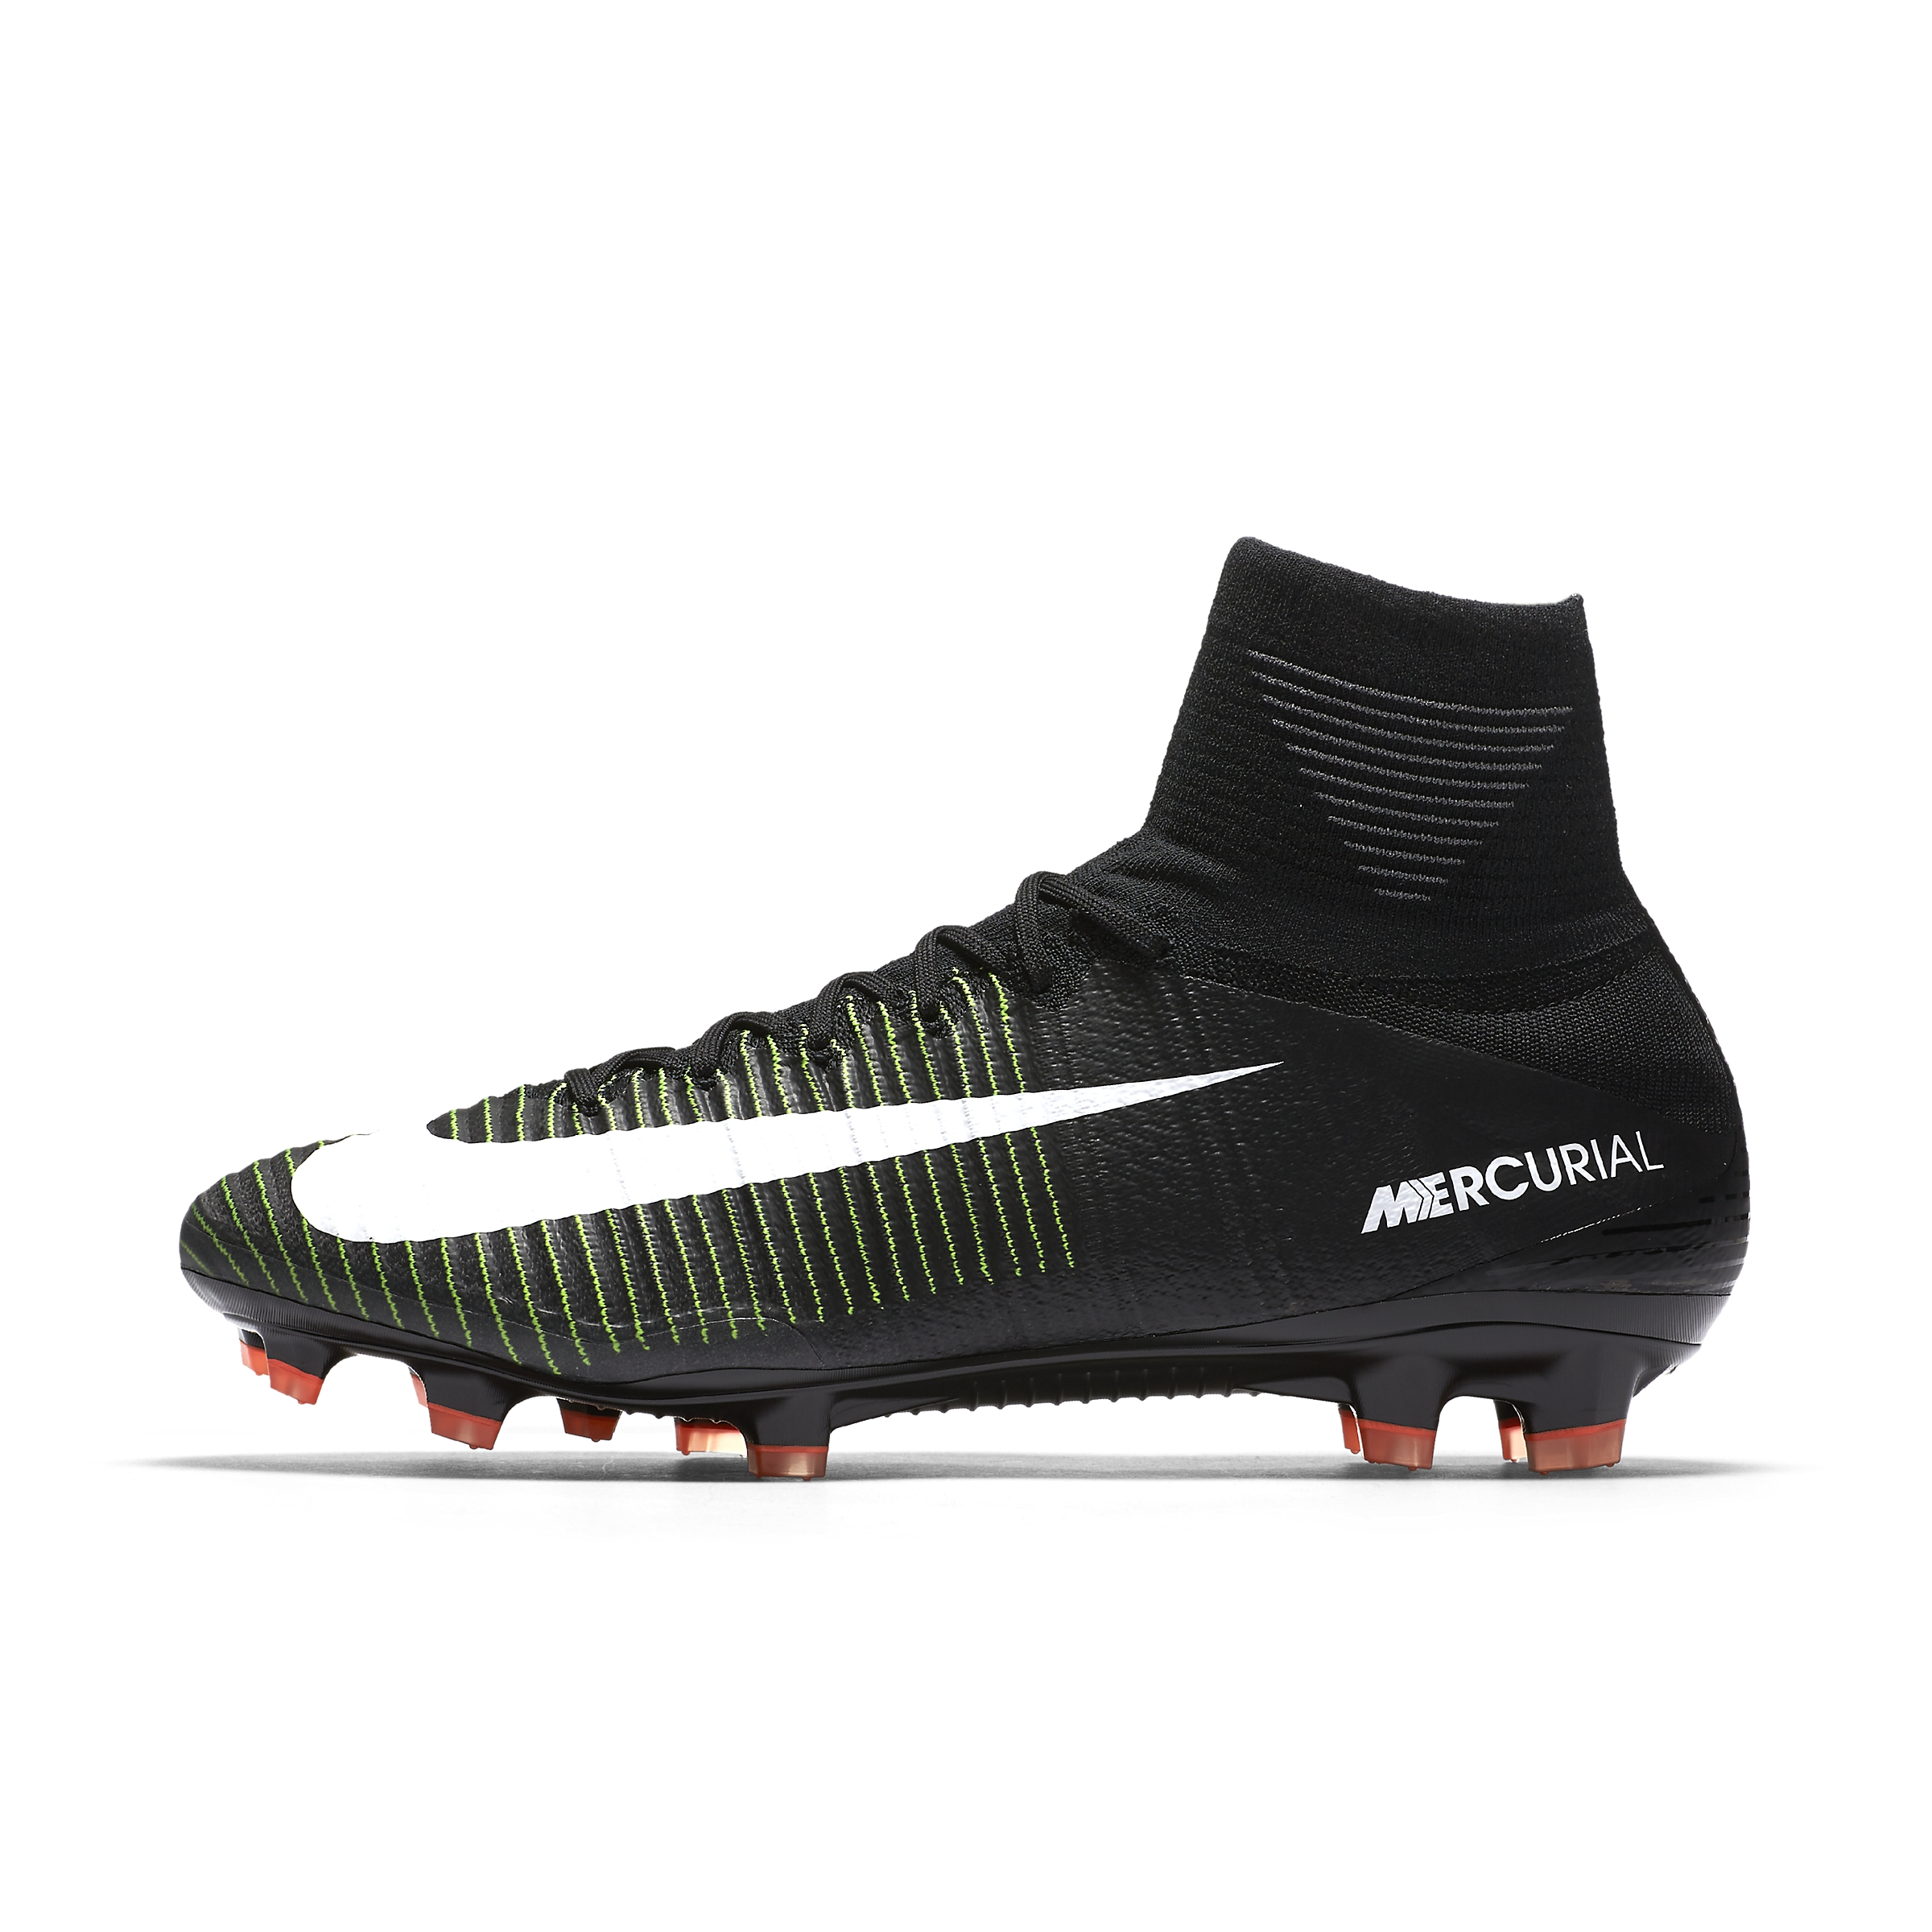 mercurial-superfly-v_a